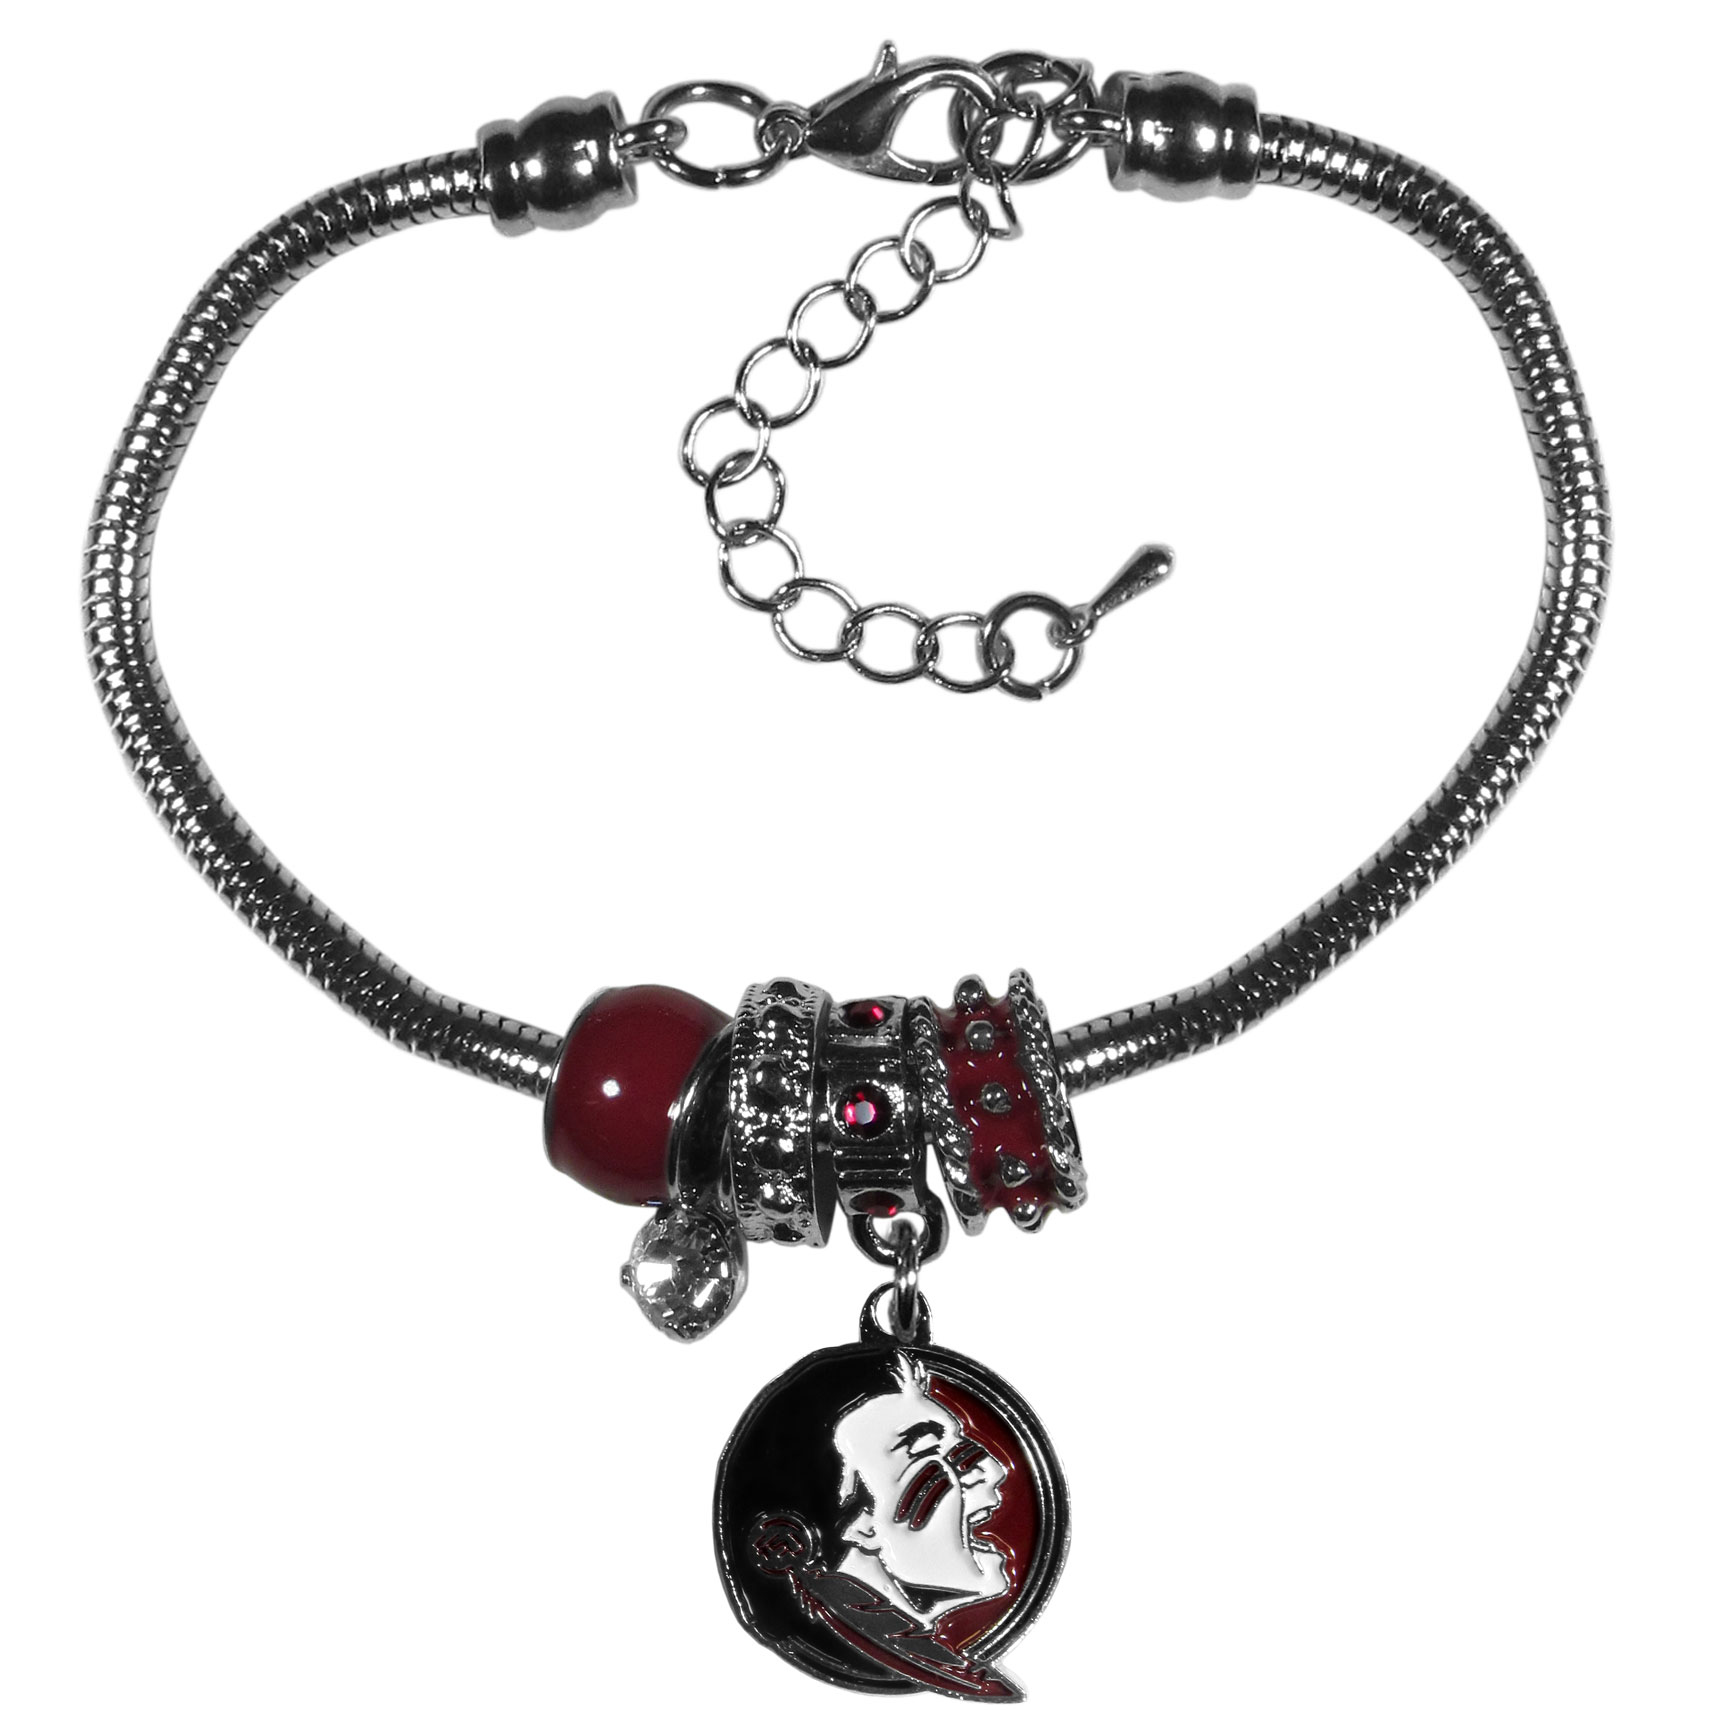 Florida St. Seminoles Euro Bead Bracelet - We have combined the wildly popular Euro style beads with your favorite team to create our  Florida St. Seminoles bead bracelet. The 7.5 inch snake chain with 2 inch extender features 4 Euro beads with enameled team colors and rhinestone accents with a high polish, nickel free charm and rhinestone charm. Perfect way to show off your team pride.